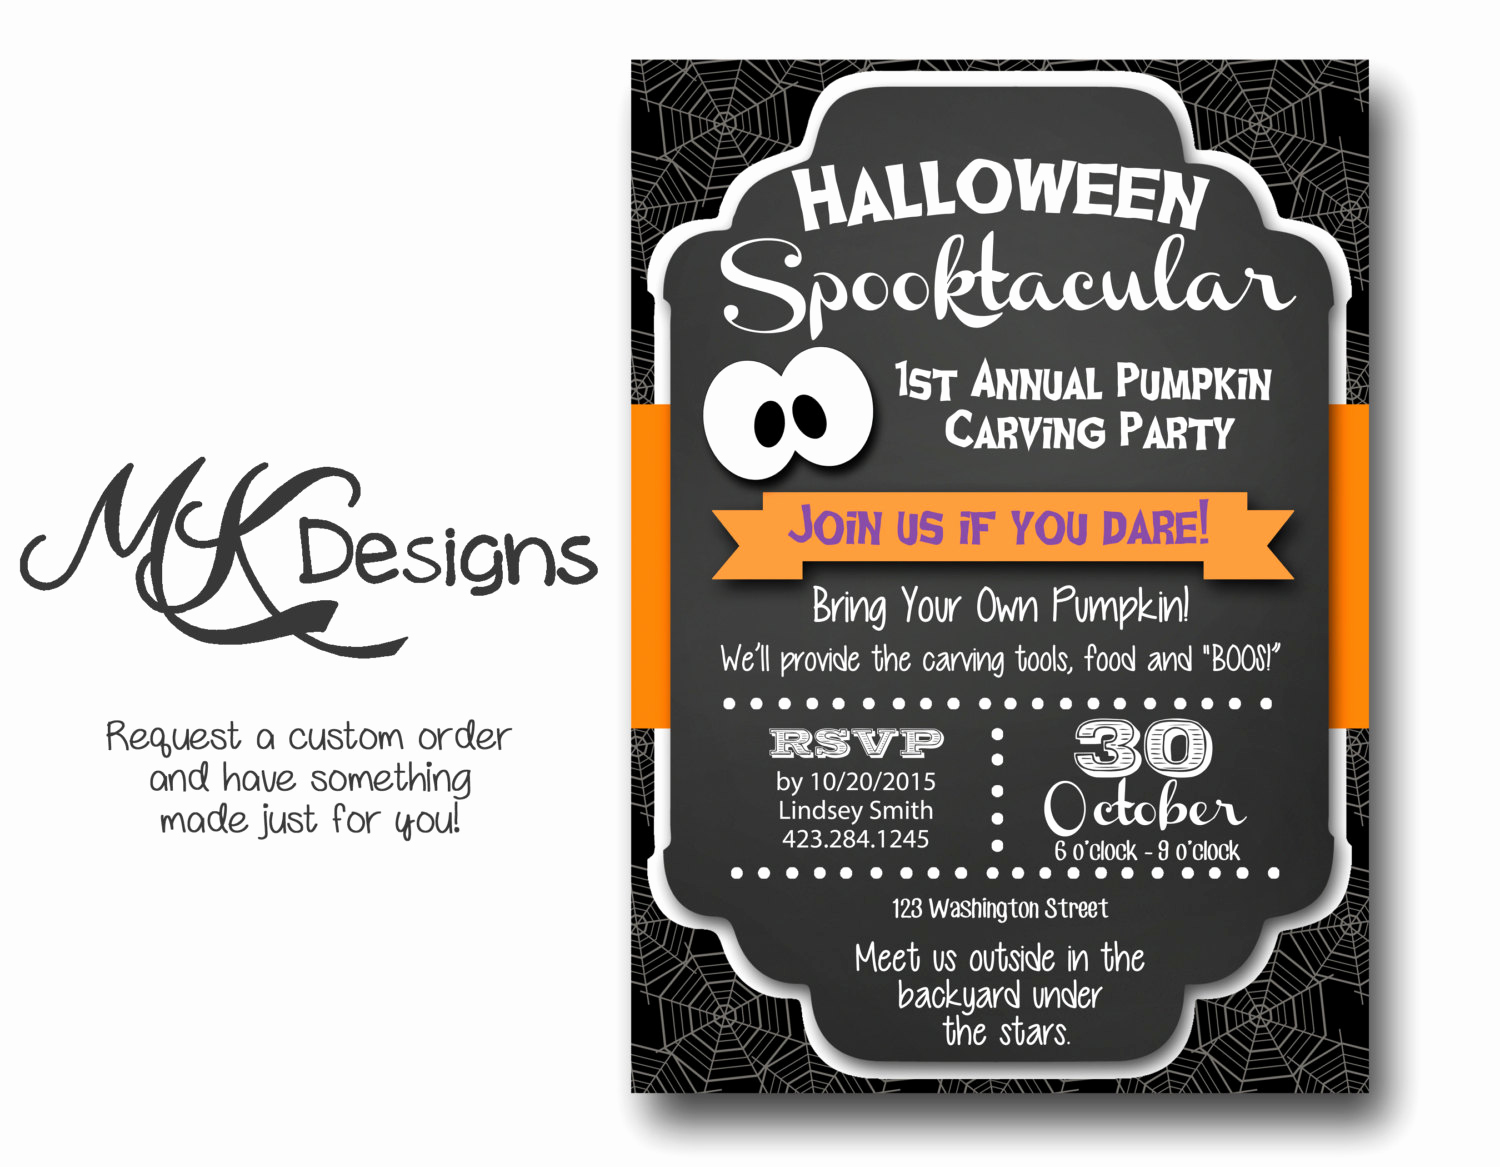 Pumpkin Carving Party Invitation Best Of Pumpkin Carving Party Invitation by Invitesbymel On Etsy